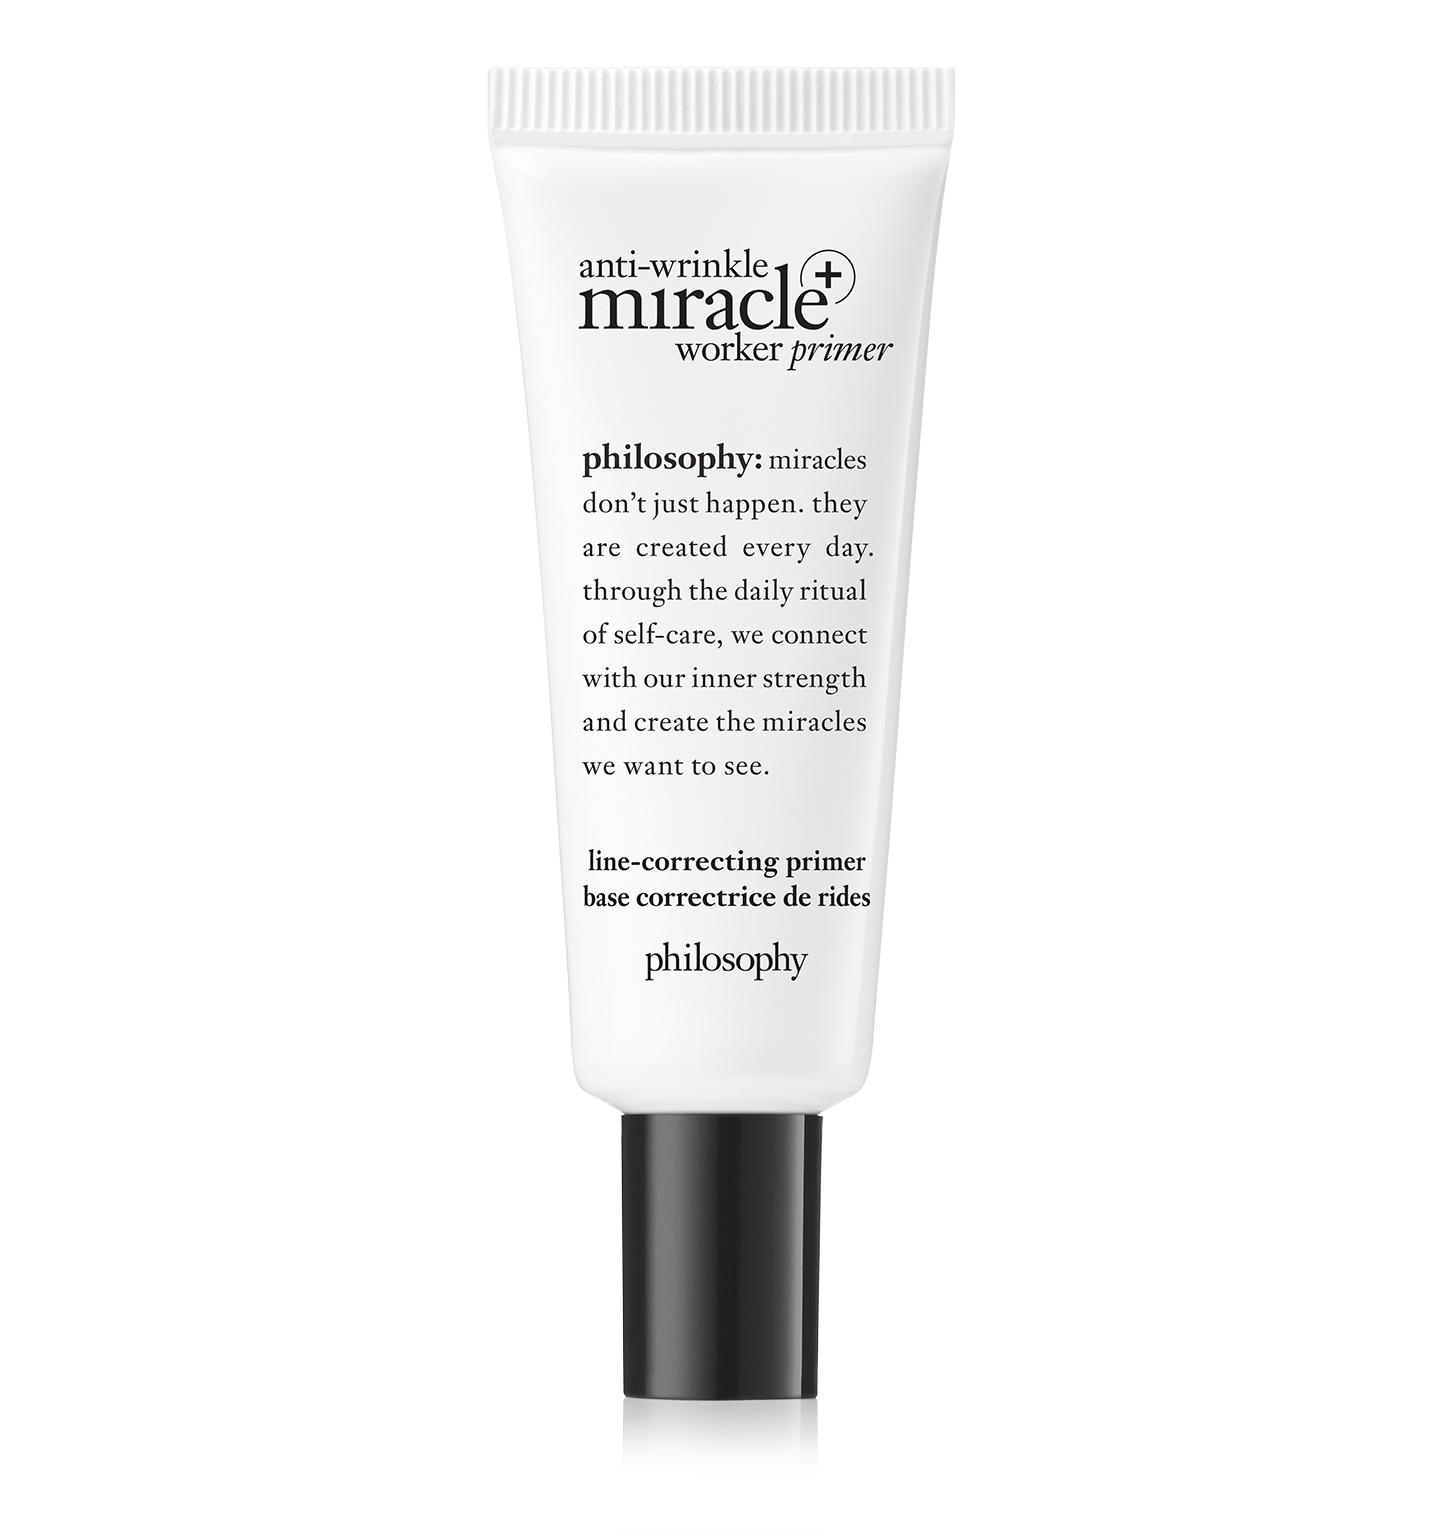 anti-wrinkle miracle worker primer+ line-correcting primer